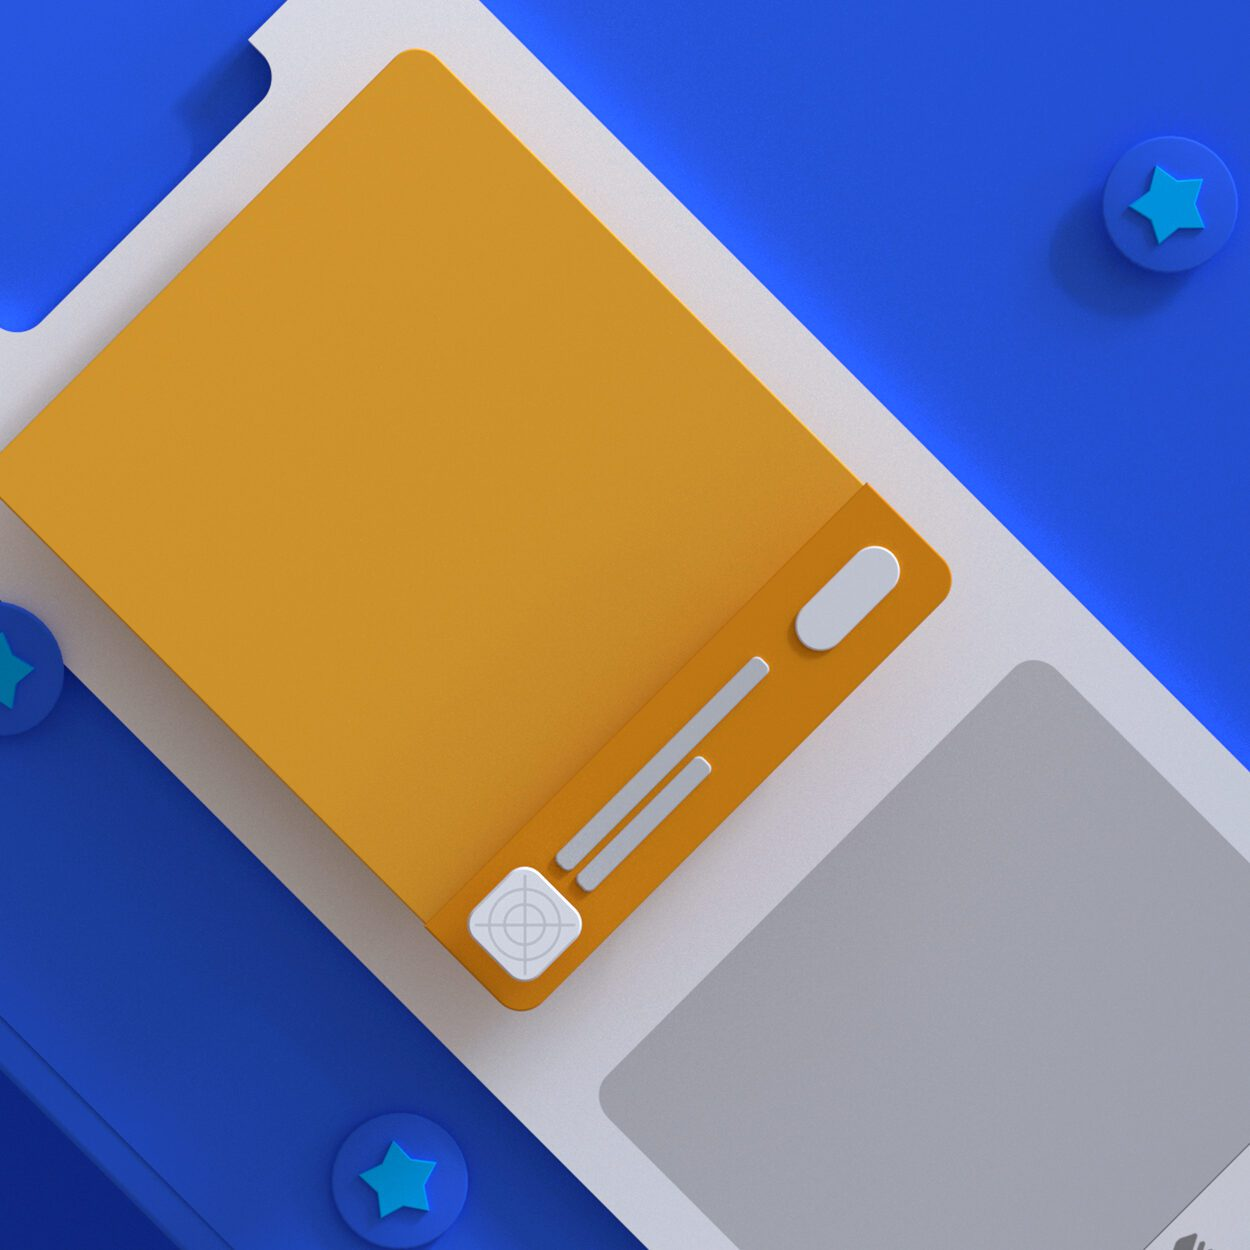 How to get featured in app stores